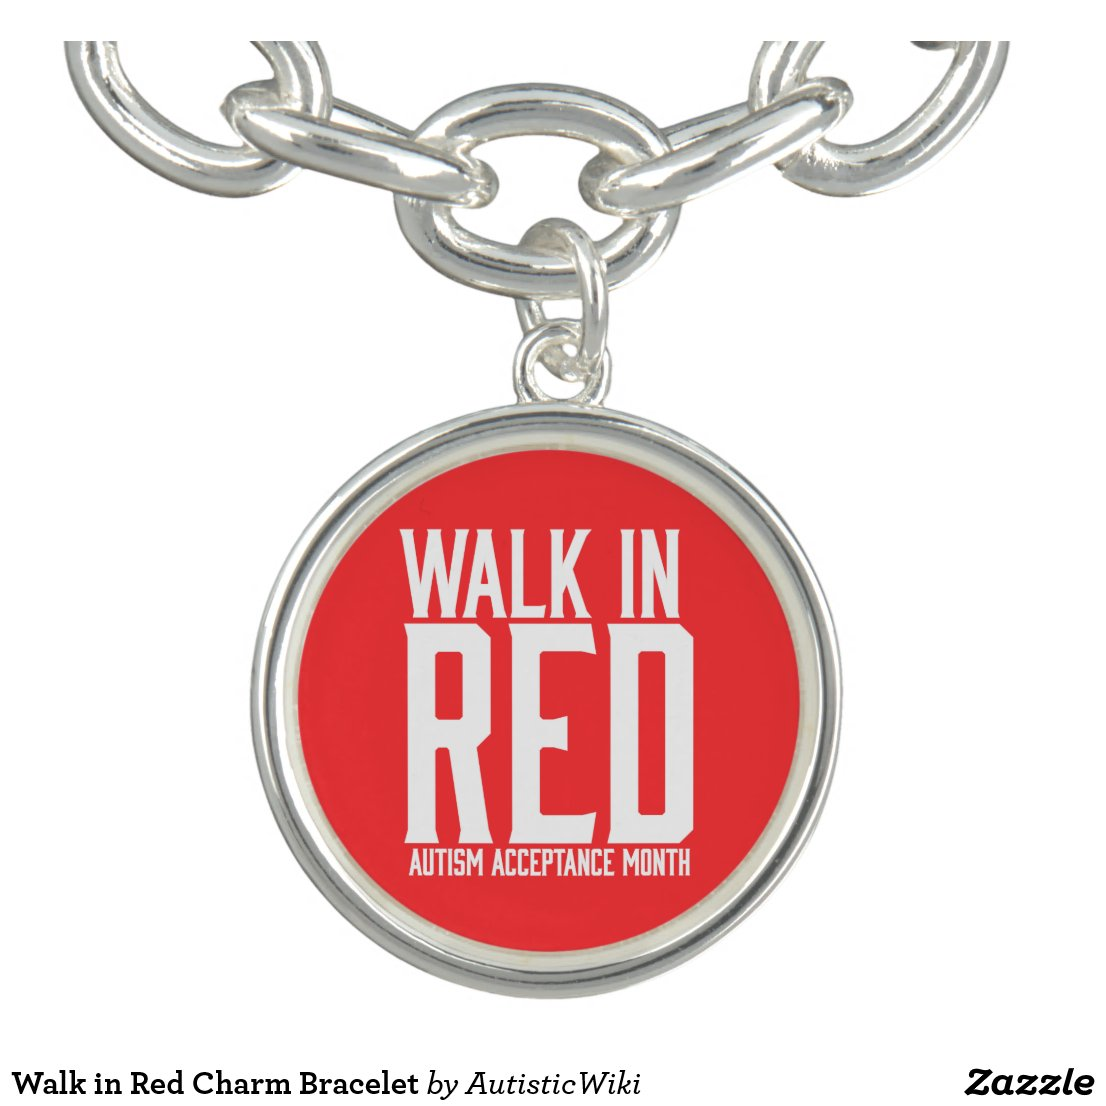 Walk in Red Charm Bracelet